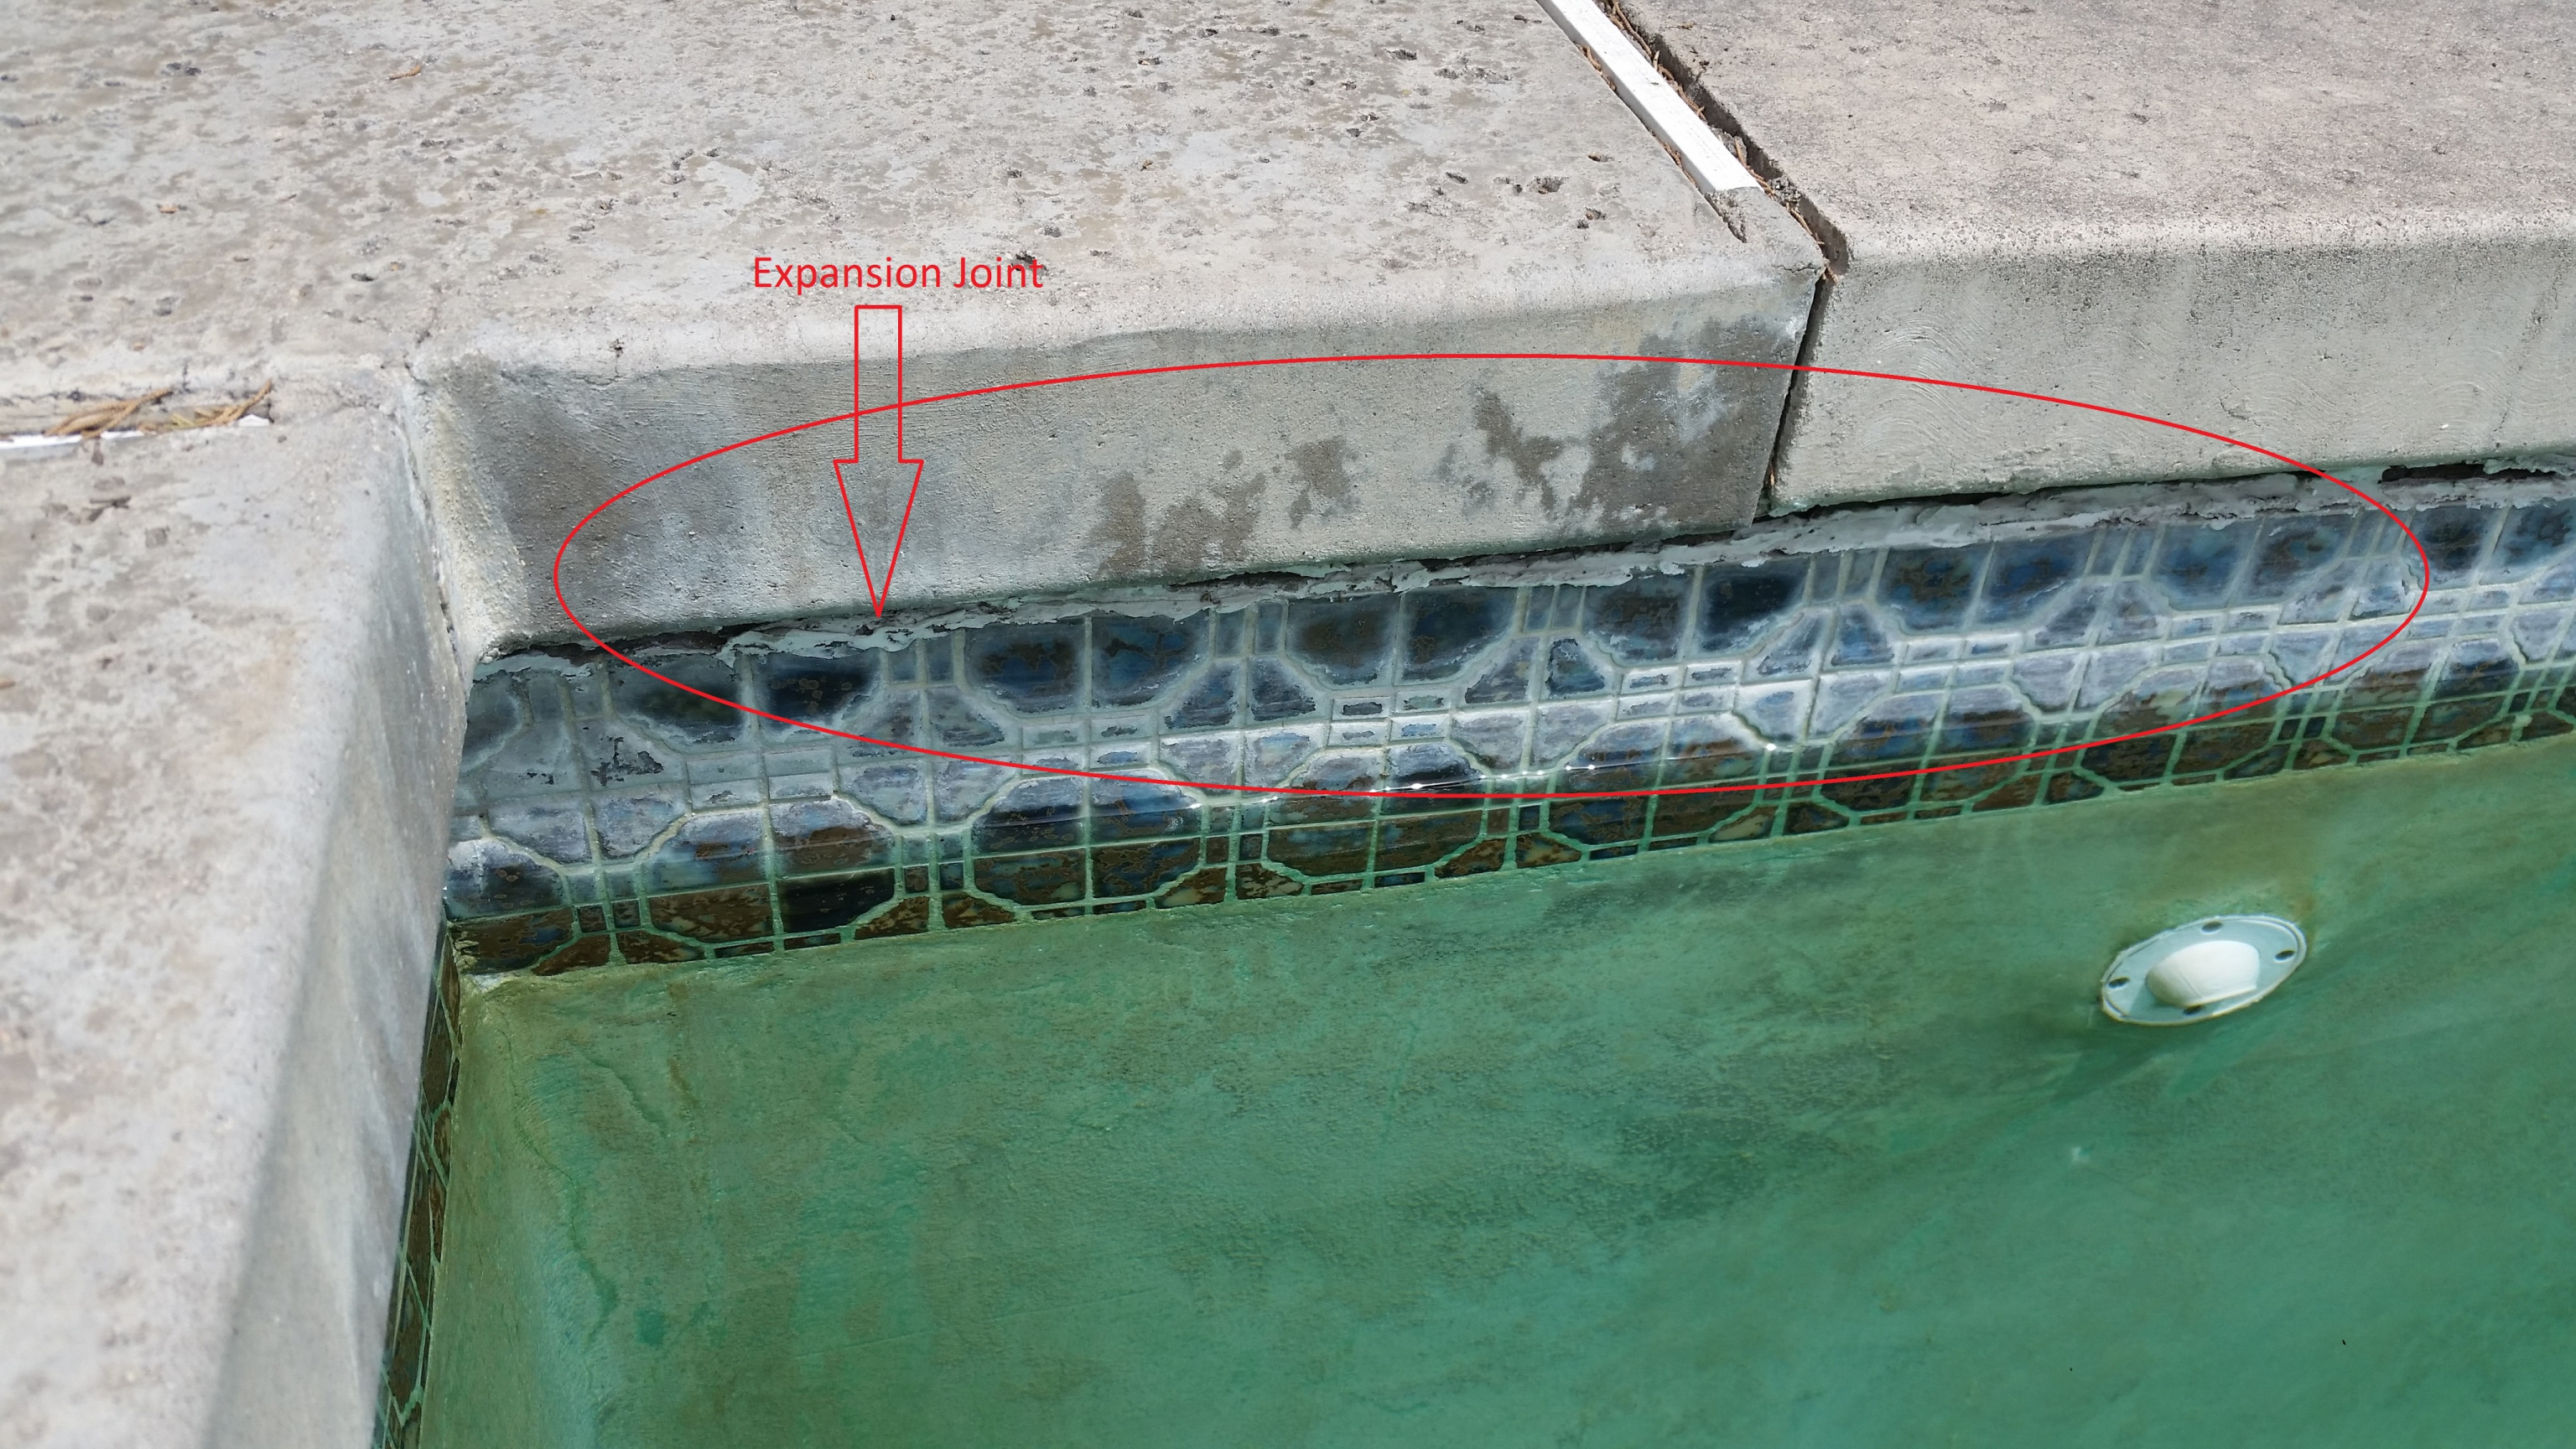 Pool Expansion Joint Image 1a.jpg